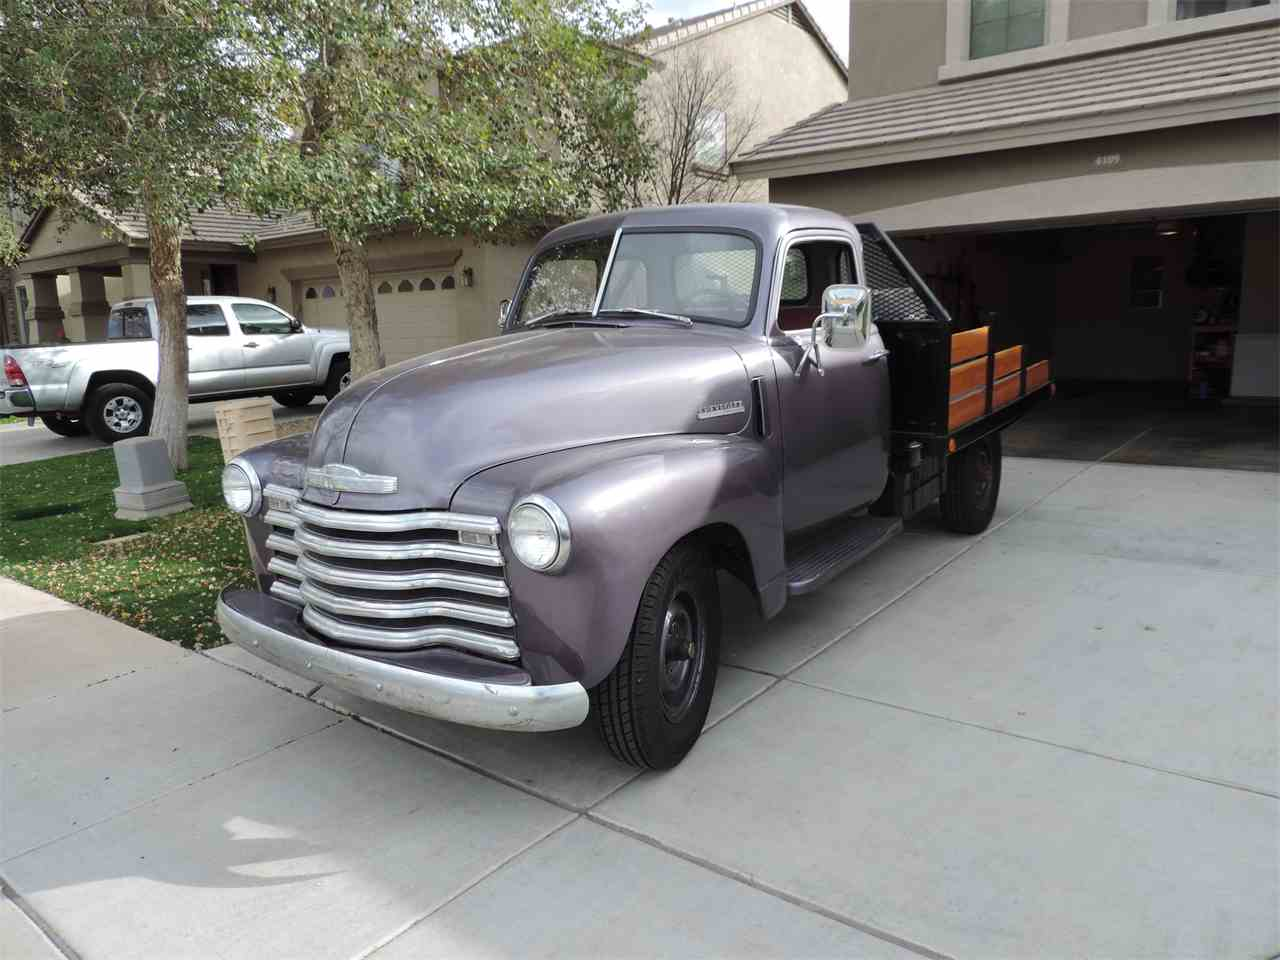 Truck 1948 chevy panel truck : 1948 Chevrolet Pickup for Sale on ClassicCars.com